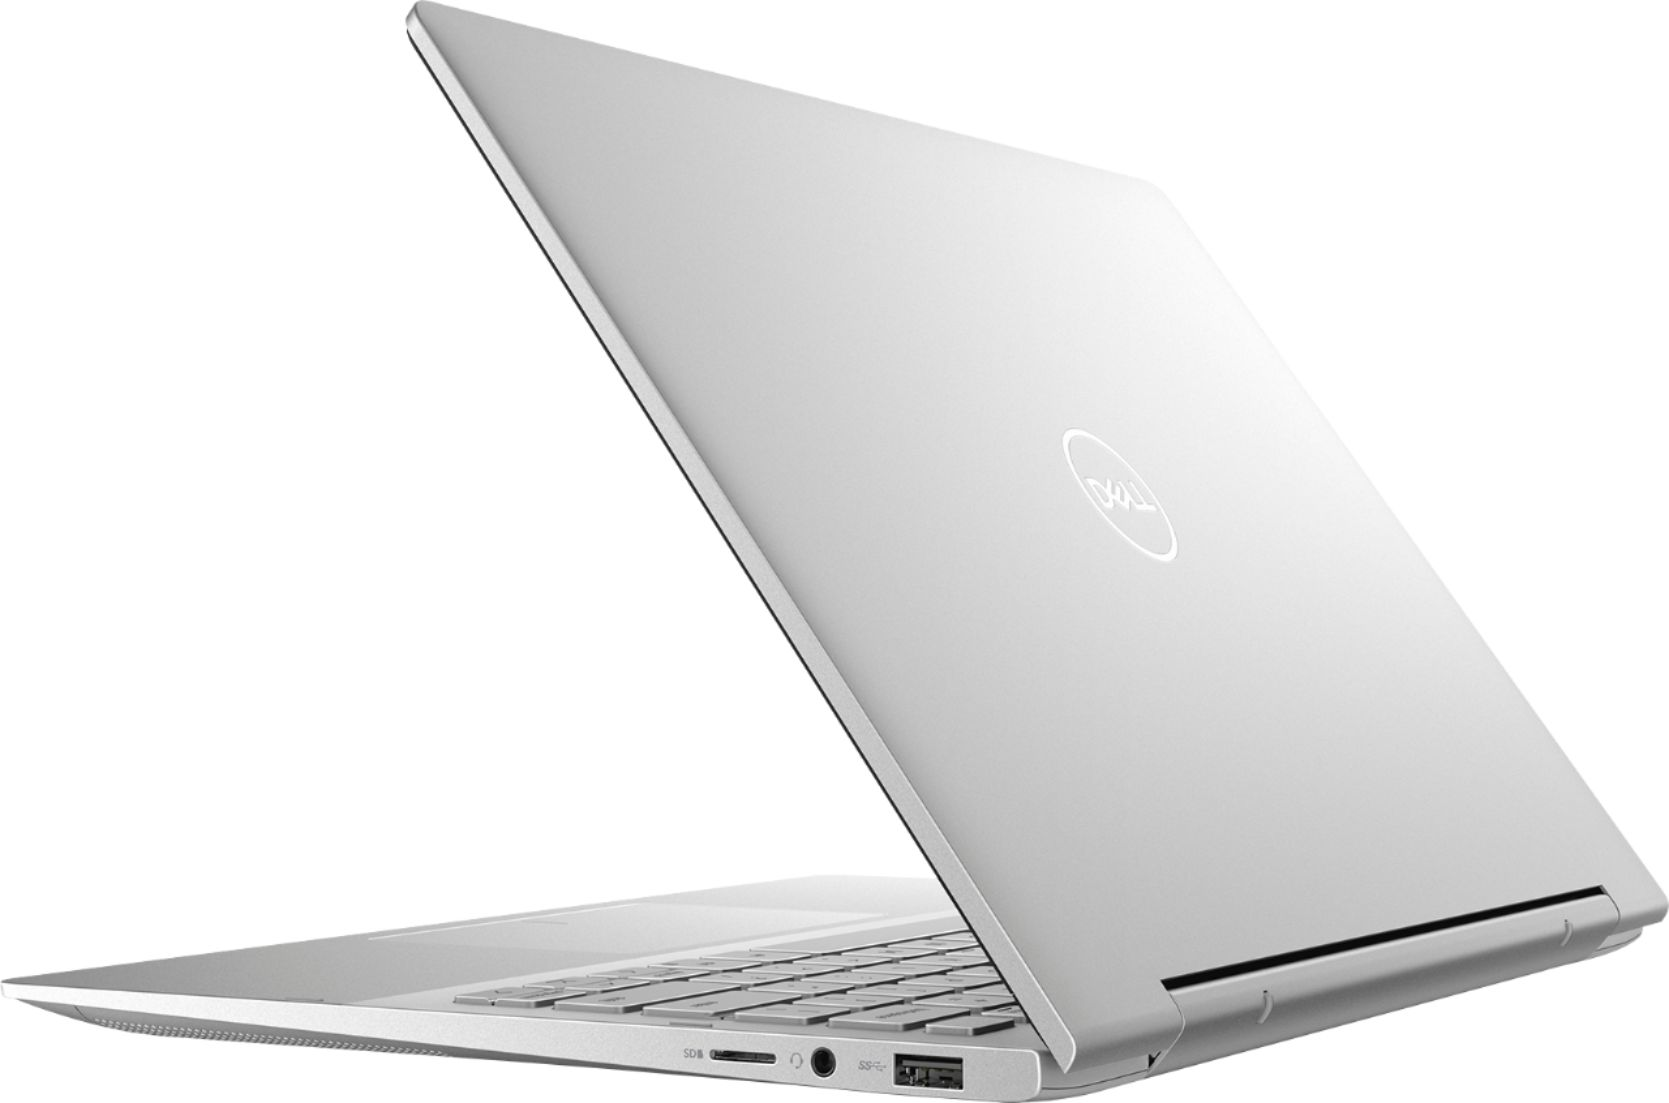 """Alt View Zoom 1. Dell - Inspiron 17.3"""" 7000 2-in-1 Touch-Screen Laptop - Intel Core i7 - 16GB Memory - GeForce MX250 - 512GB SSD + 32GB Optane - Silver."""